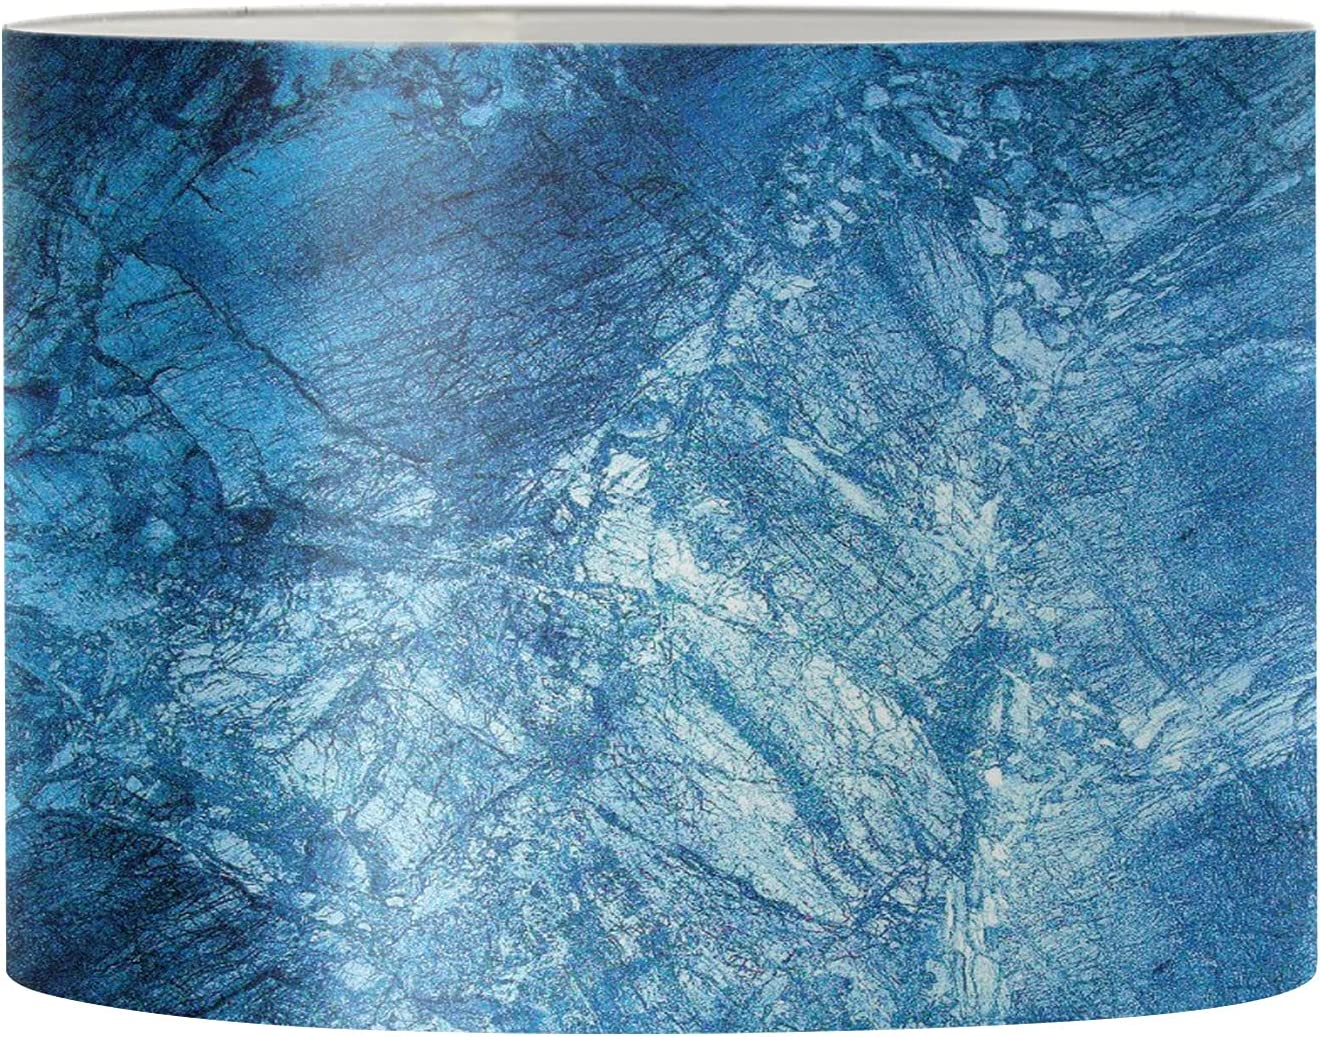 Poceacles Large 17 x 10.4 Inches Challenge the lowest price Special price for a limited time of Japan Blue Fabric Drum with Marb Lamp